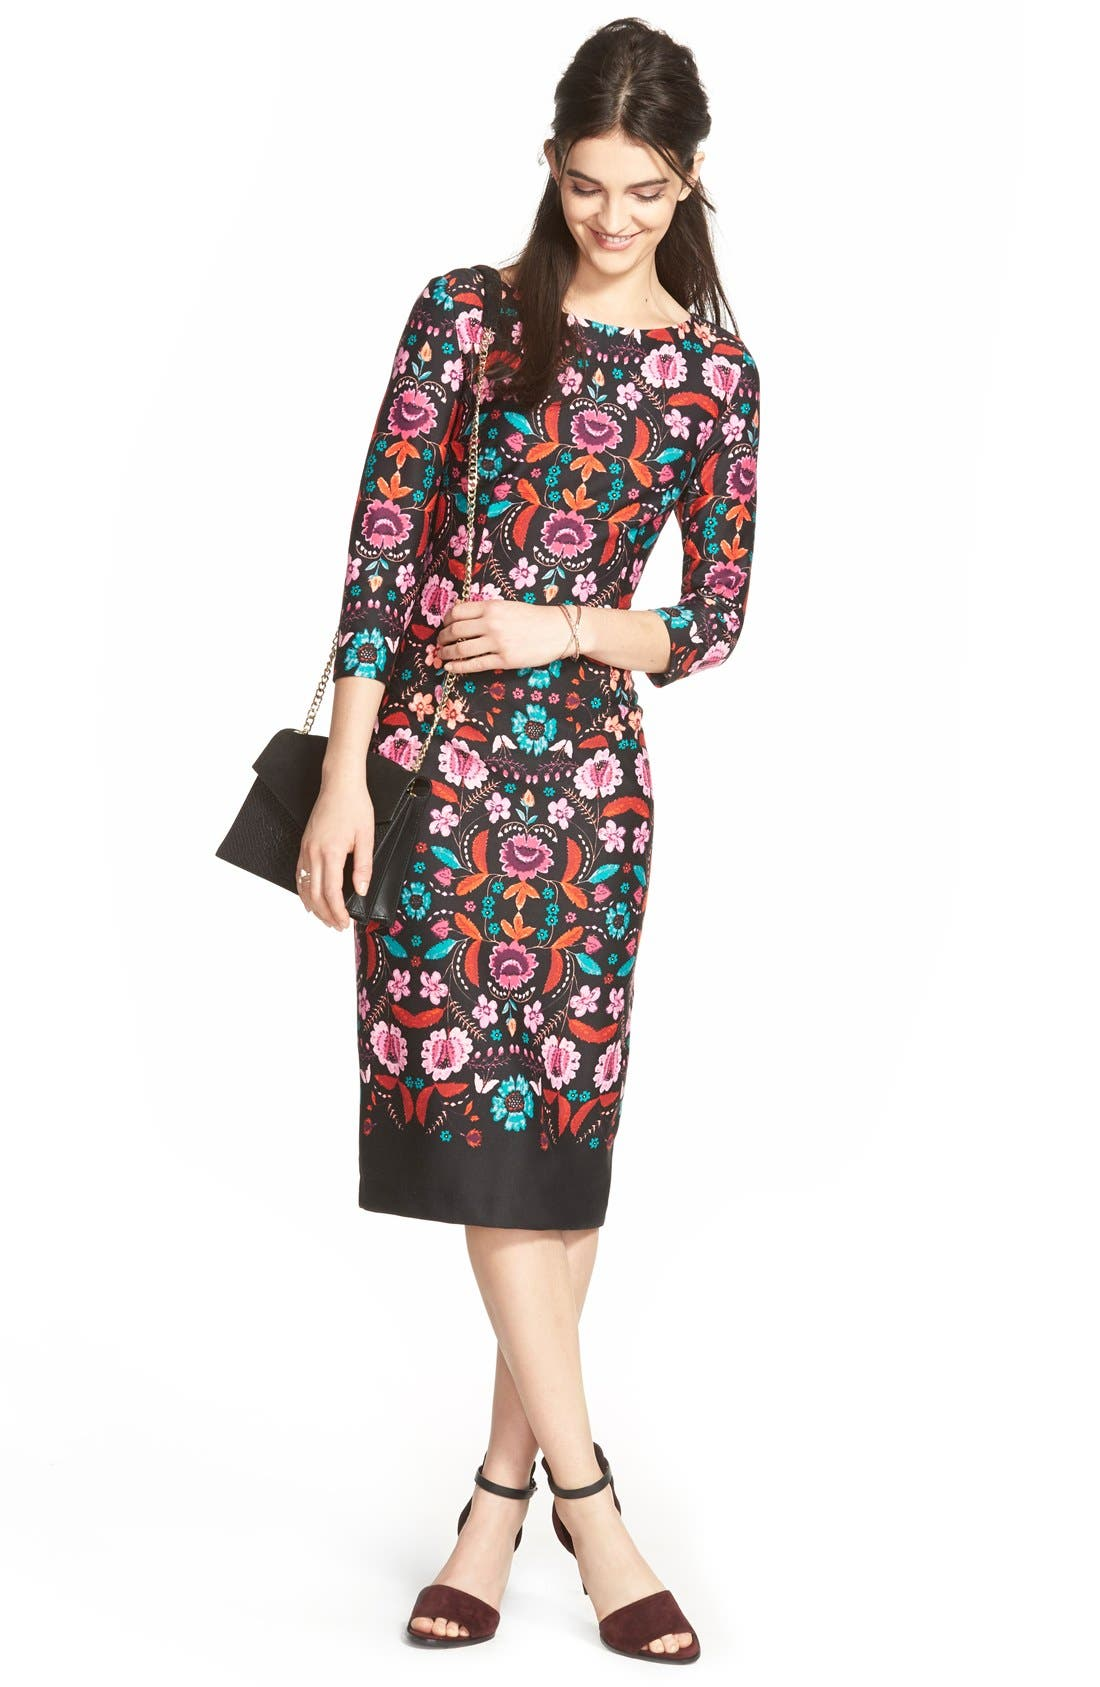 Alternate Image 1 Selected - Eliza J Floral Print Ponte Sheath Dress (Regular & Petite)